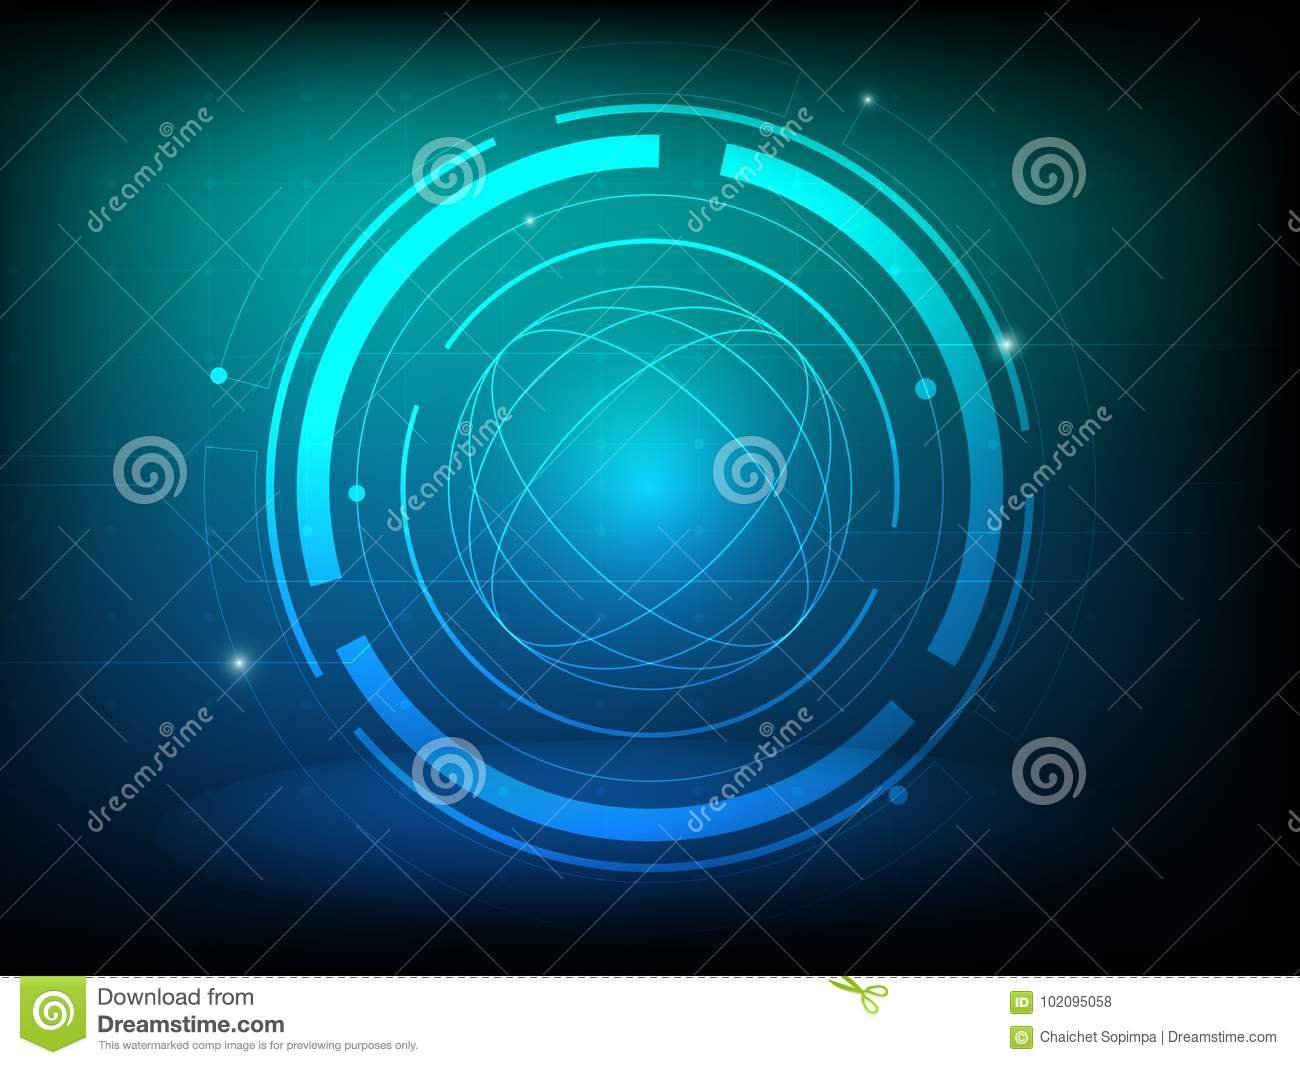 Abstract blue green circle digital technology background, futuristic structure elements concept background